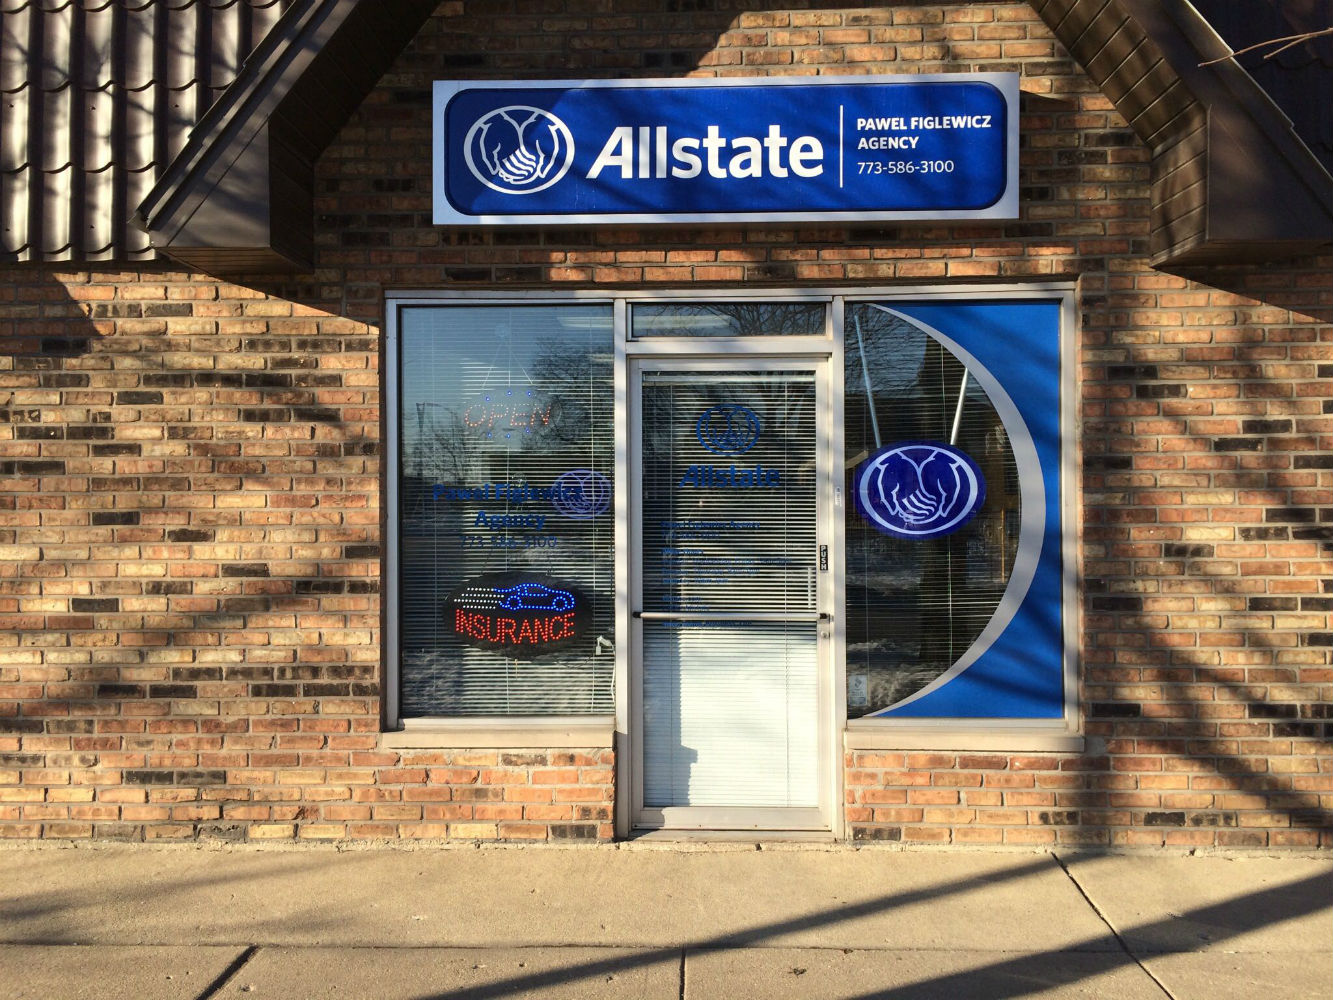 Allstate Insurance Agent: Pawel Figlewicz